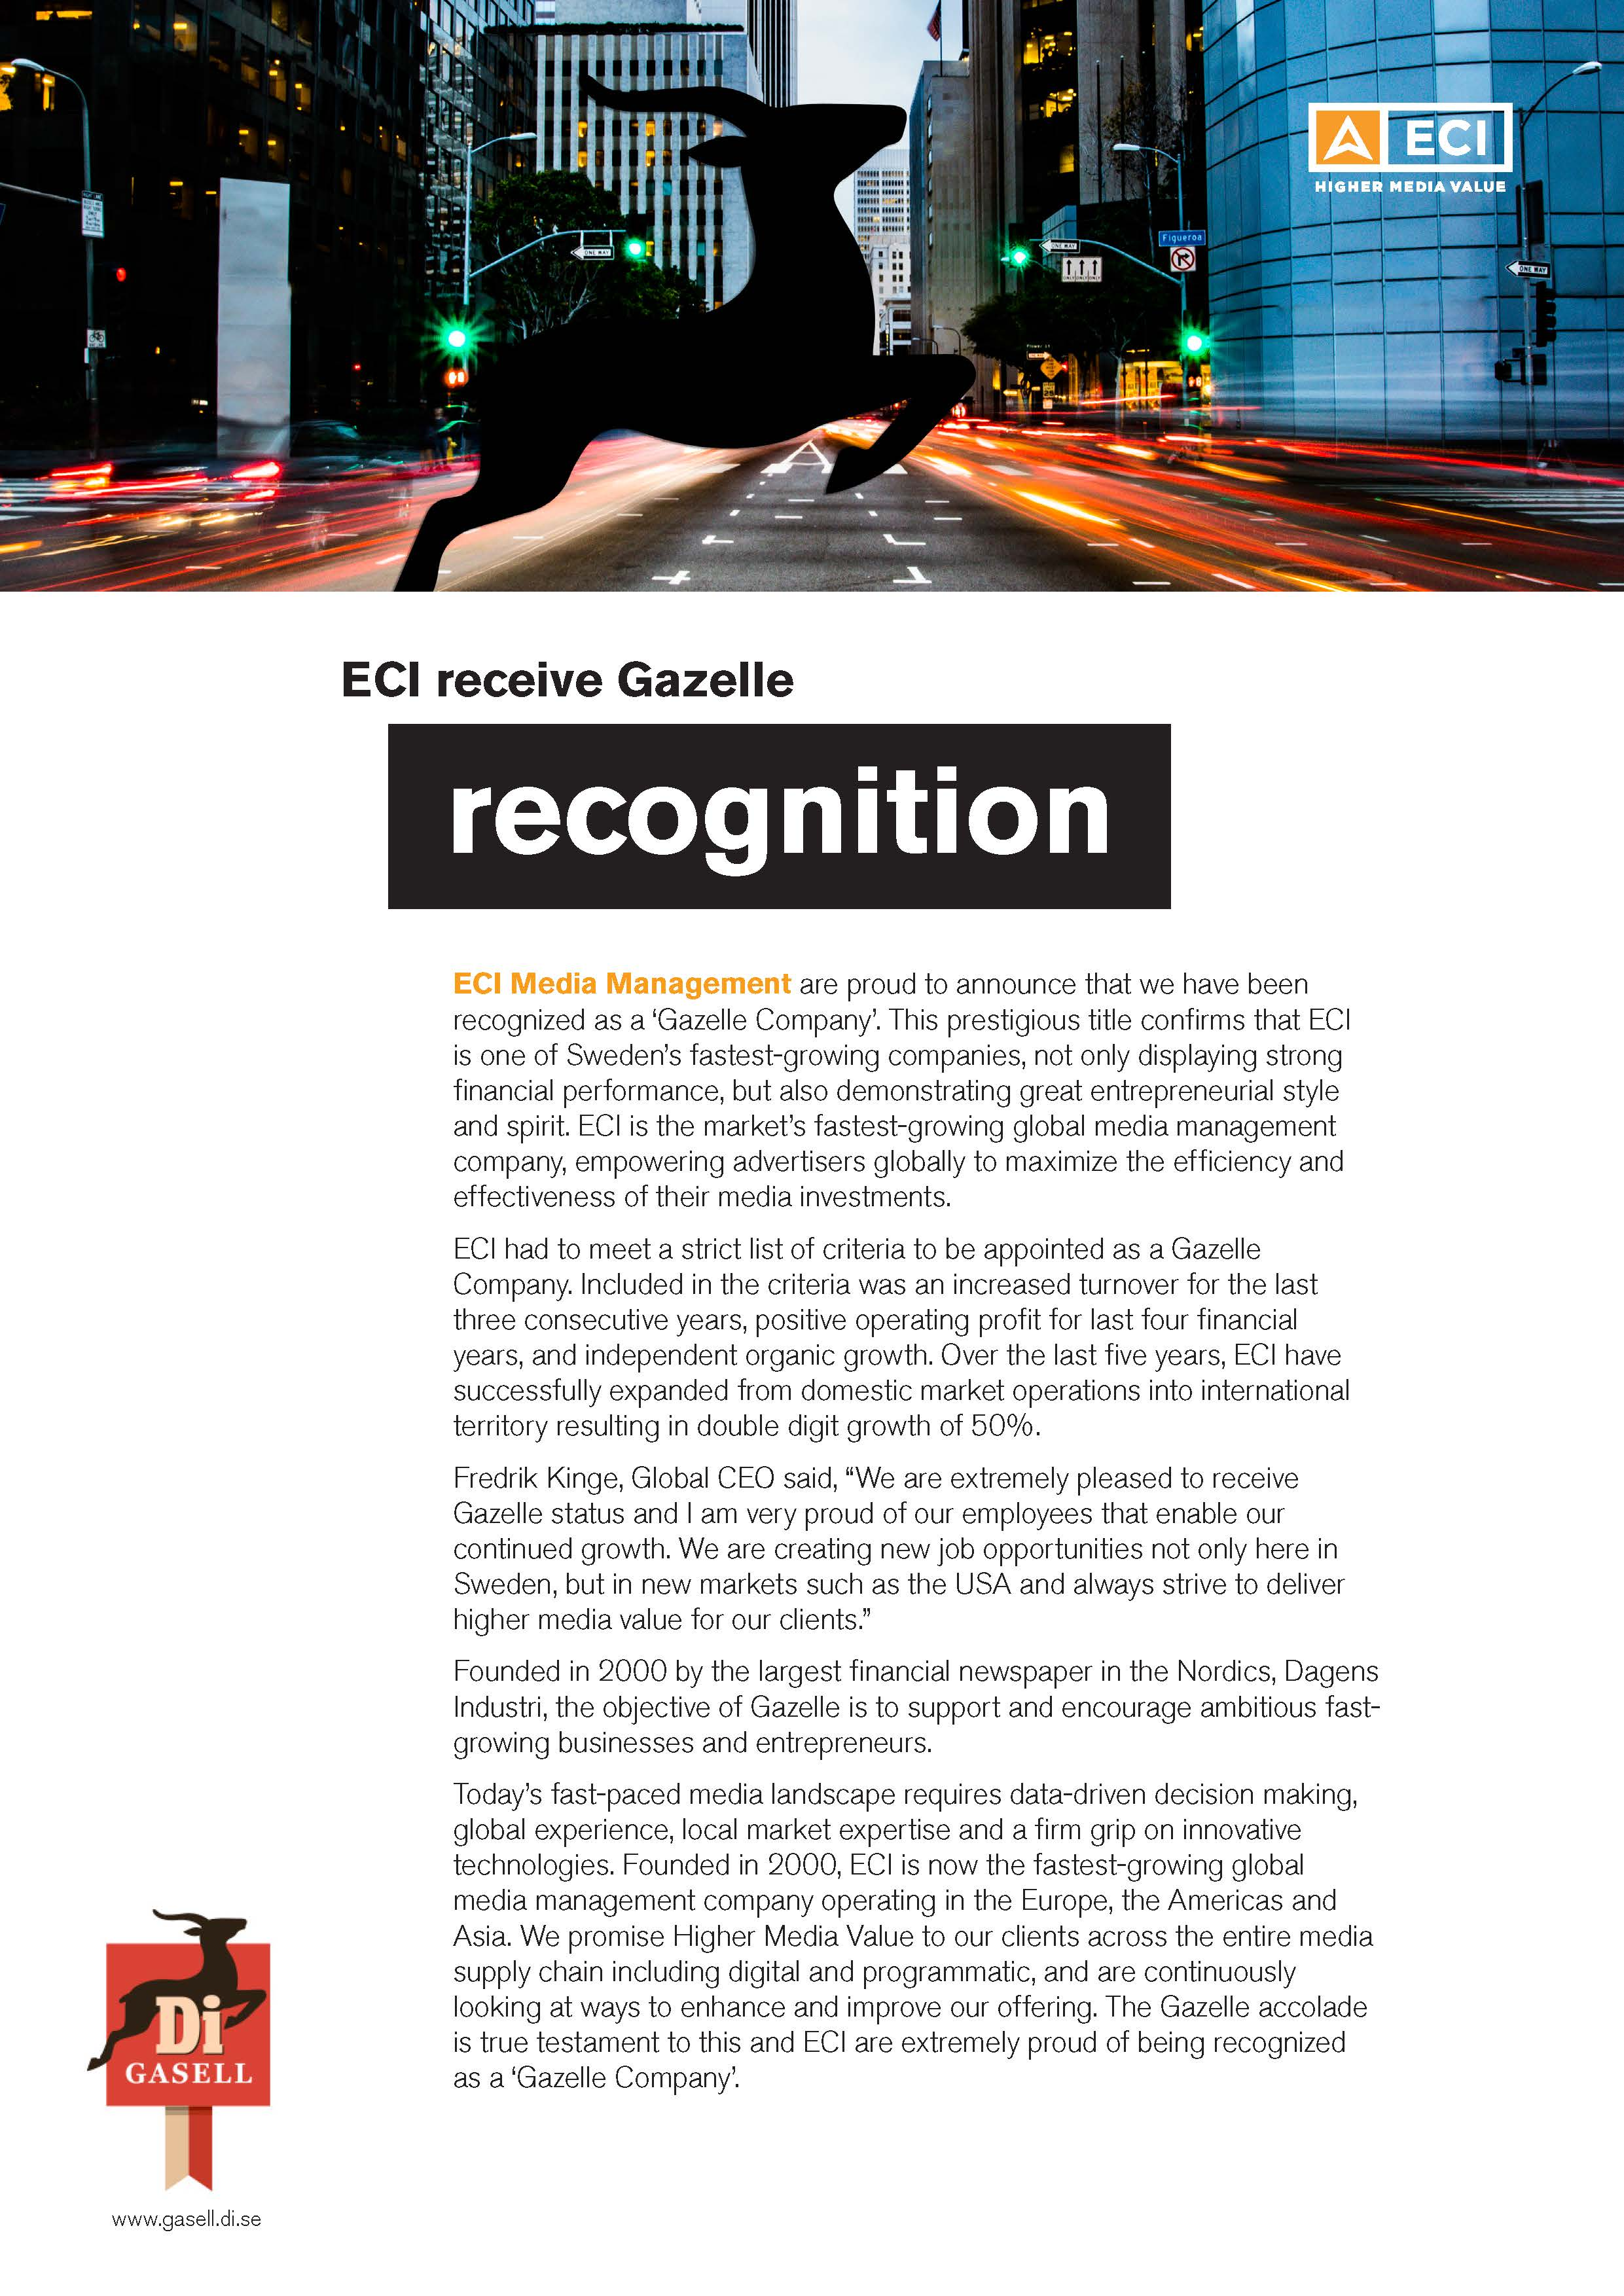 eci-receive-gasell-recognition-oct-2017-1